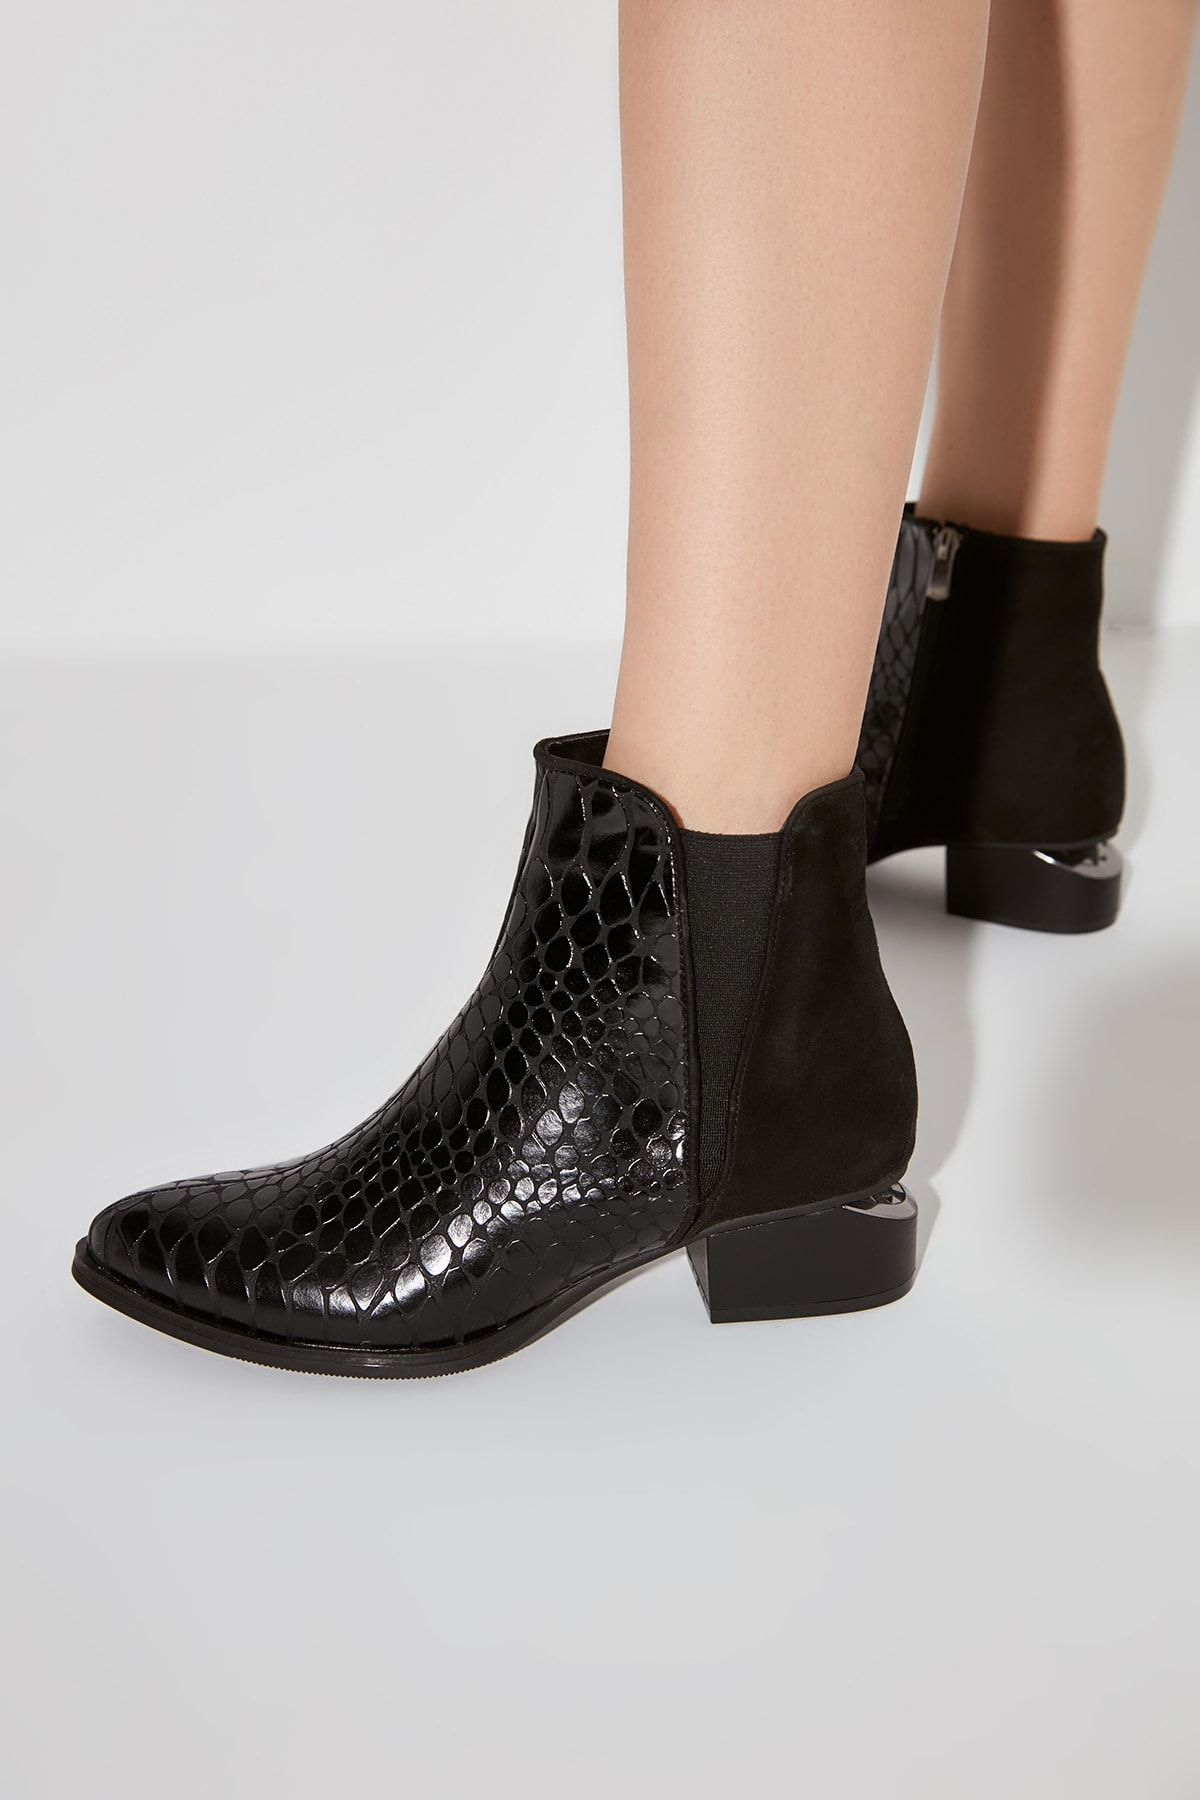 Black Kroko Patterned Women Boots & Bootie TAKAW20BO0253